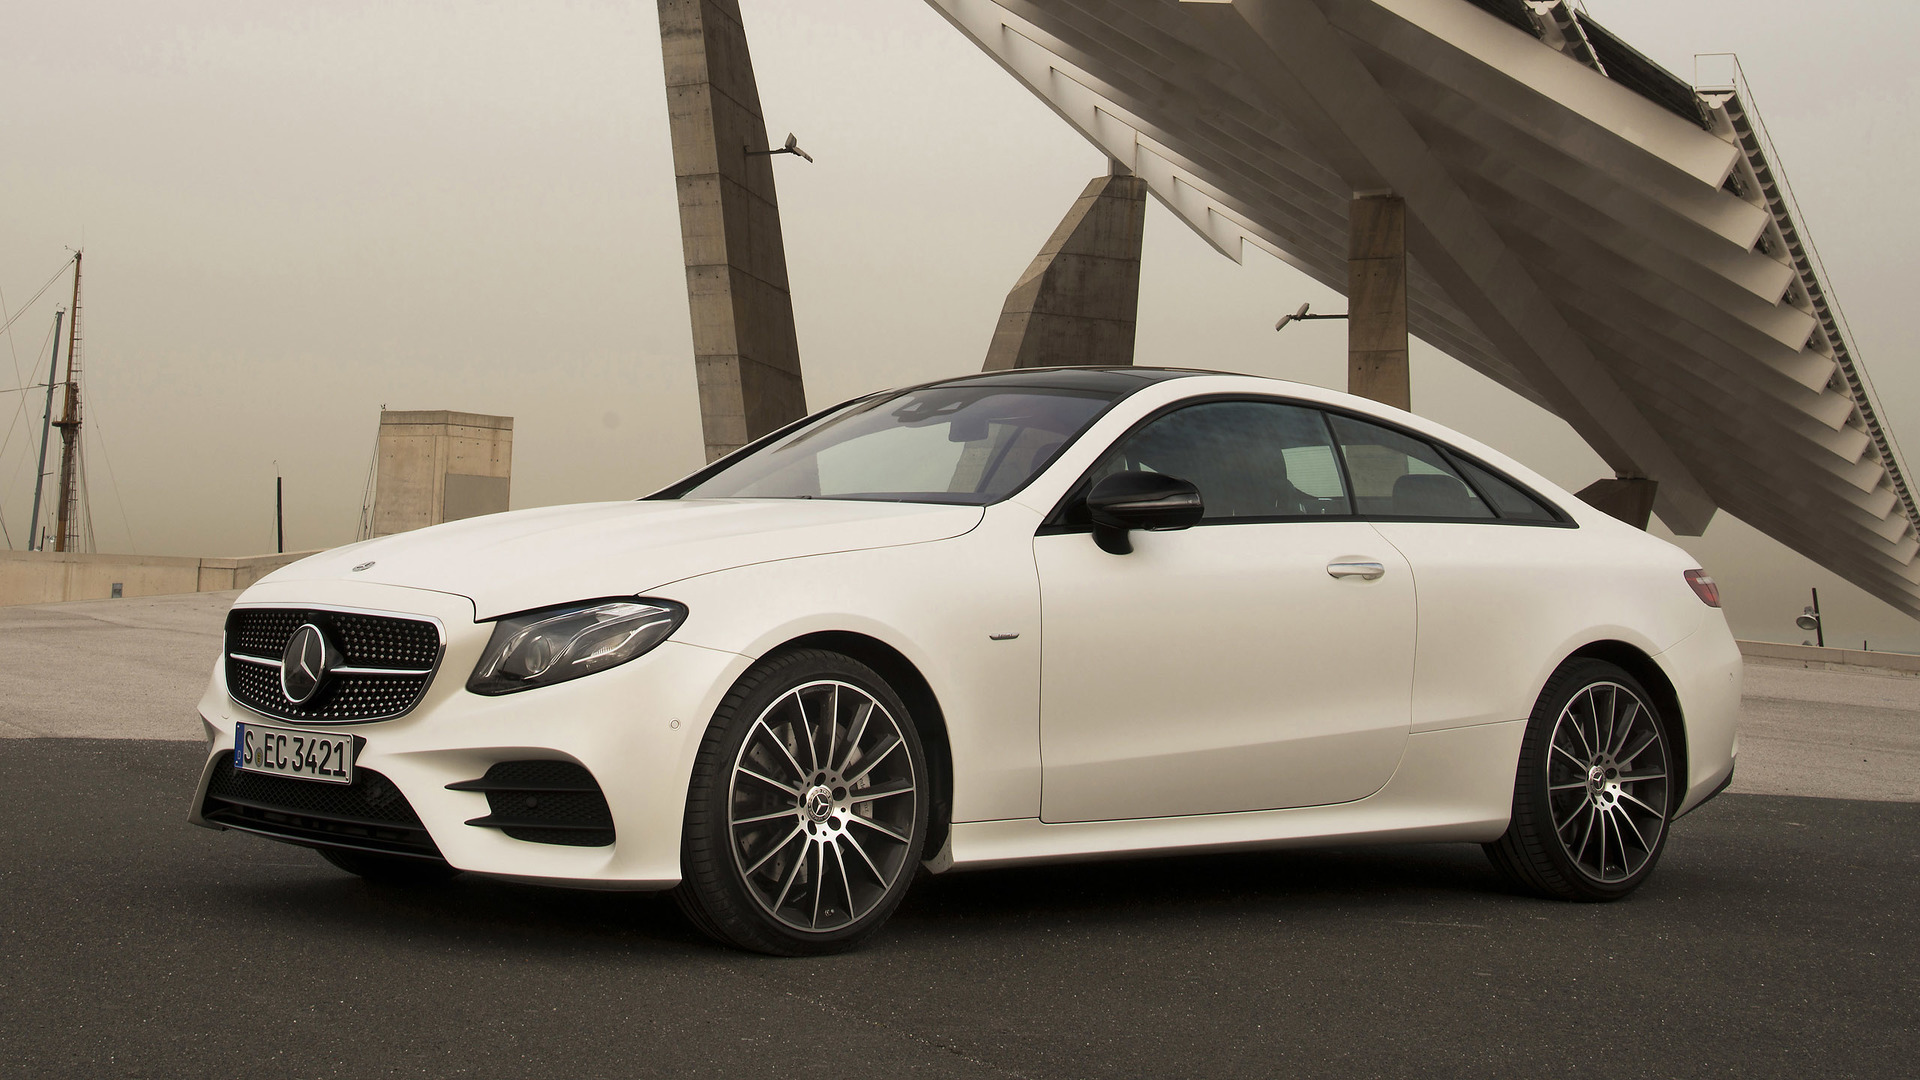 E400 Coupe 2018 >> 2018 Mercedes-Benz E400 Coupe First Drive: Your new retirement cruiser